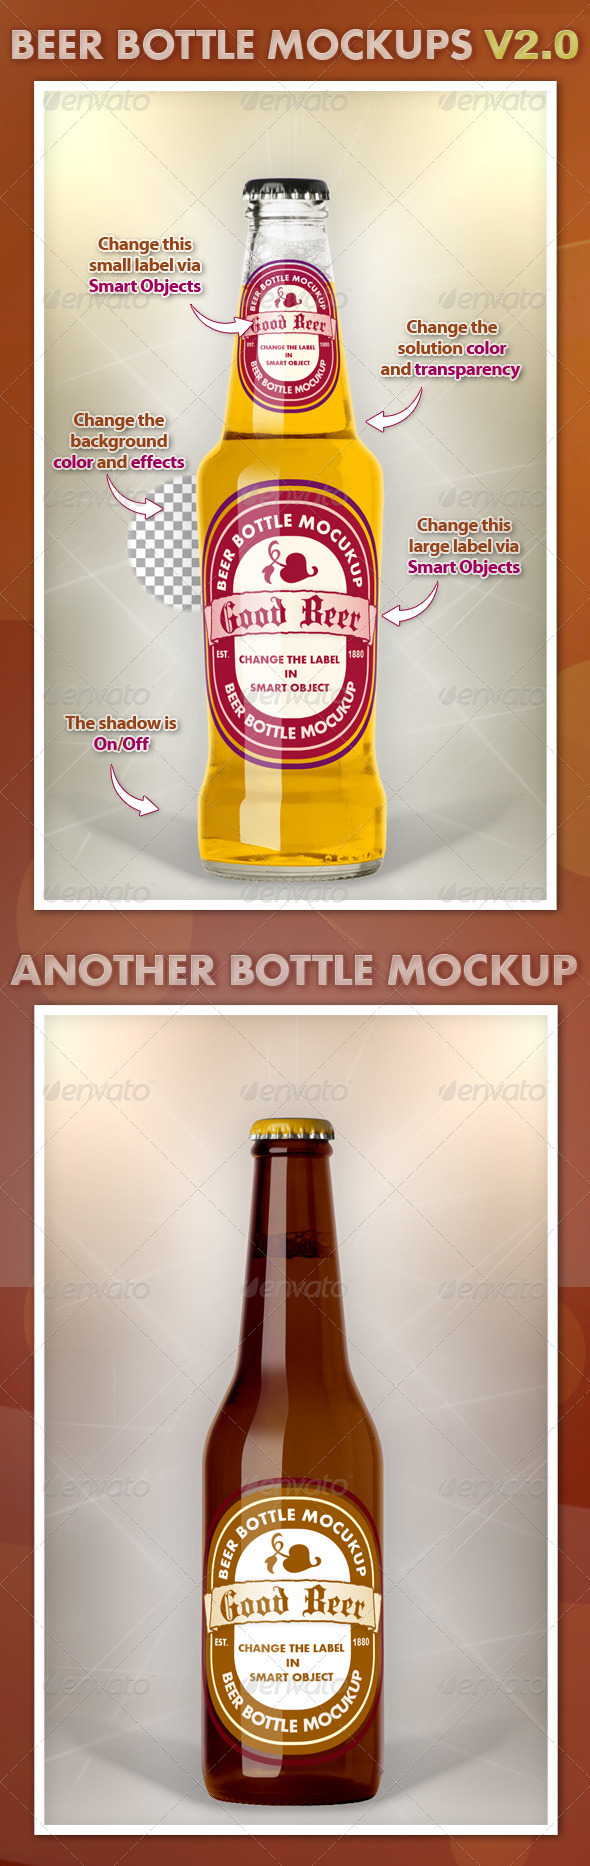 Beer Bottle Mockups V2.0 - Food and Drink Packaging